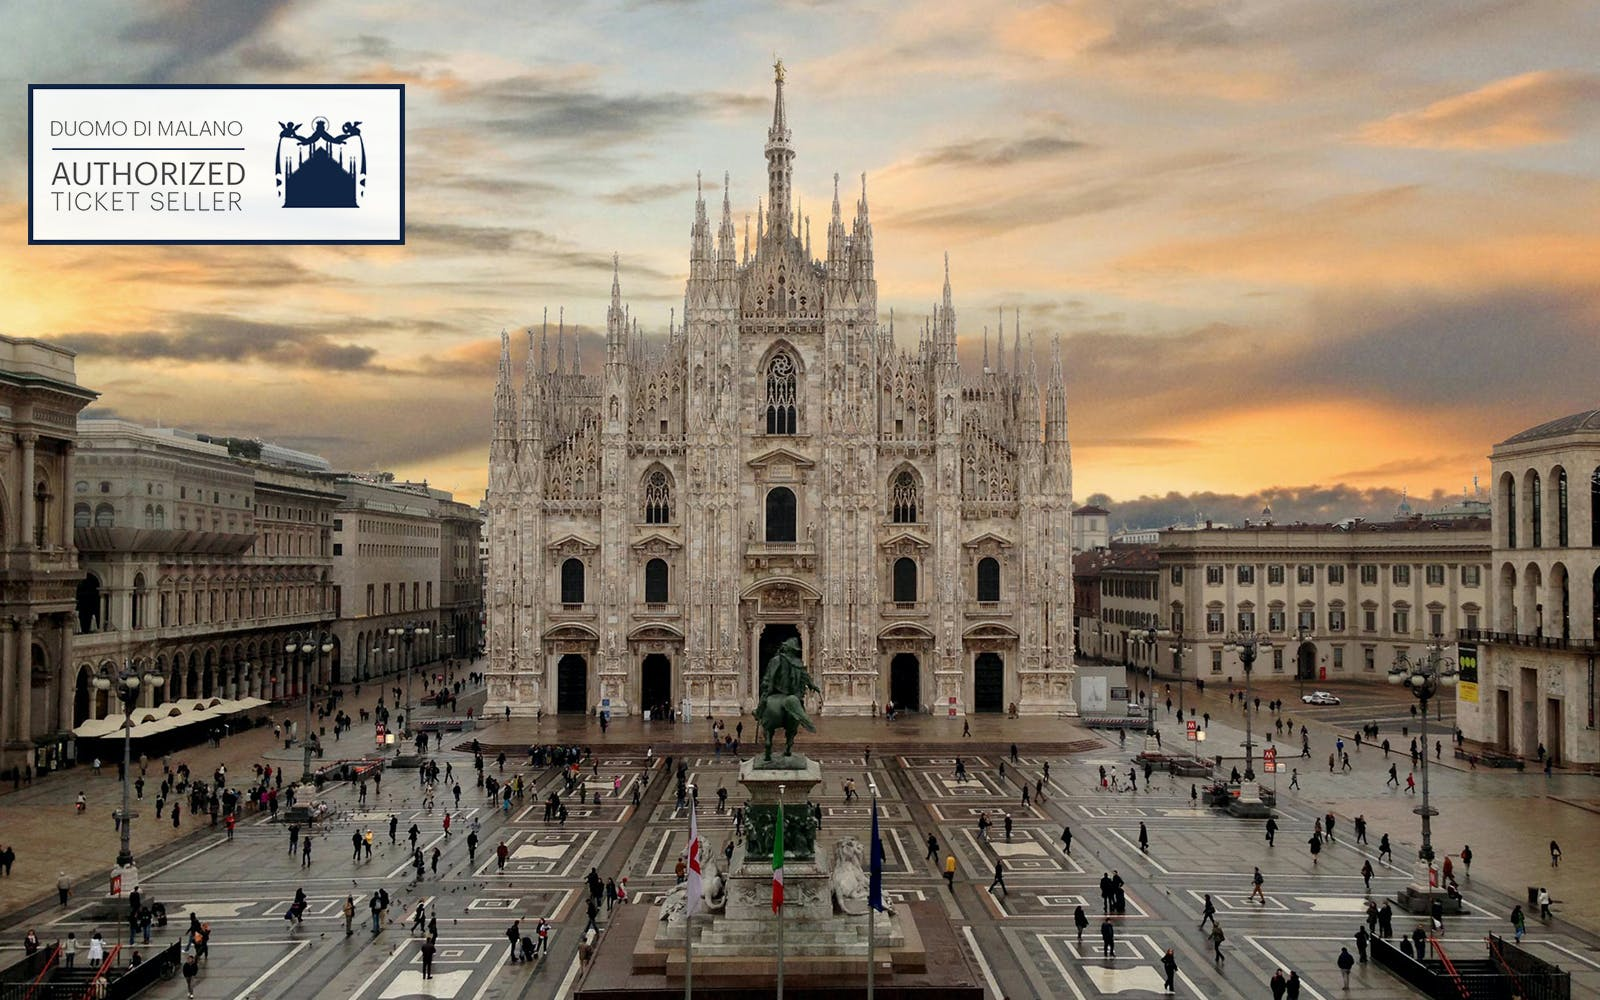 Skip The Line Duomo di Milano, Rooftop & Museum Tickets